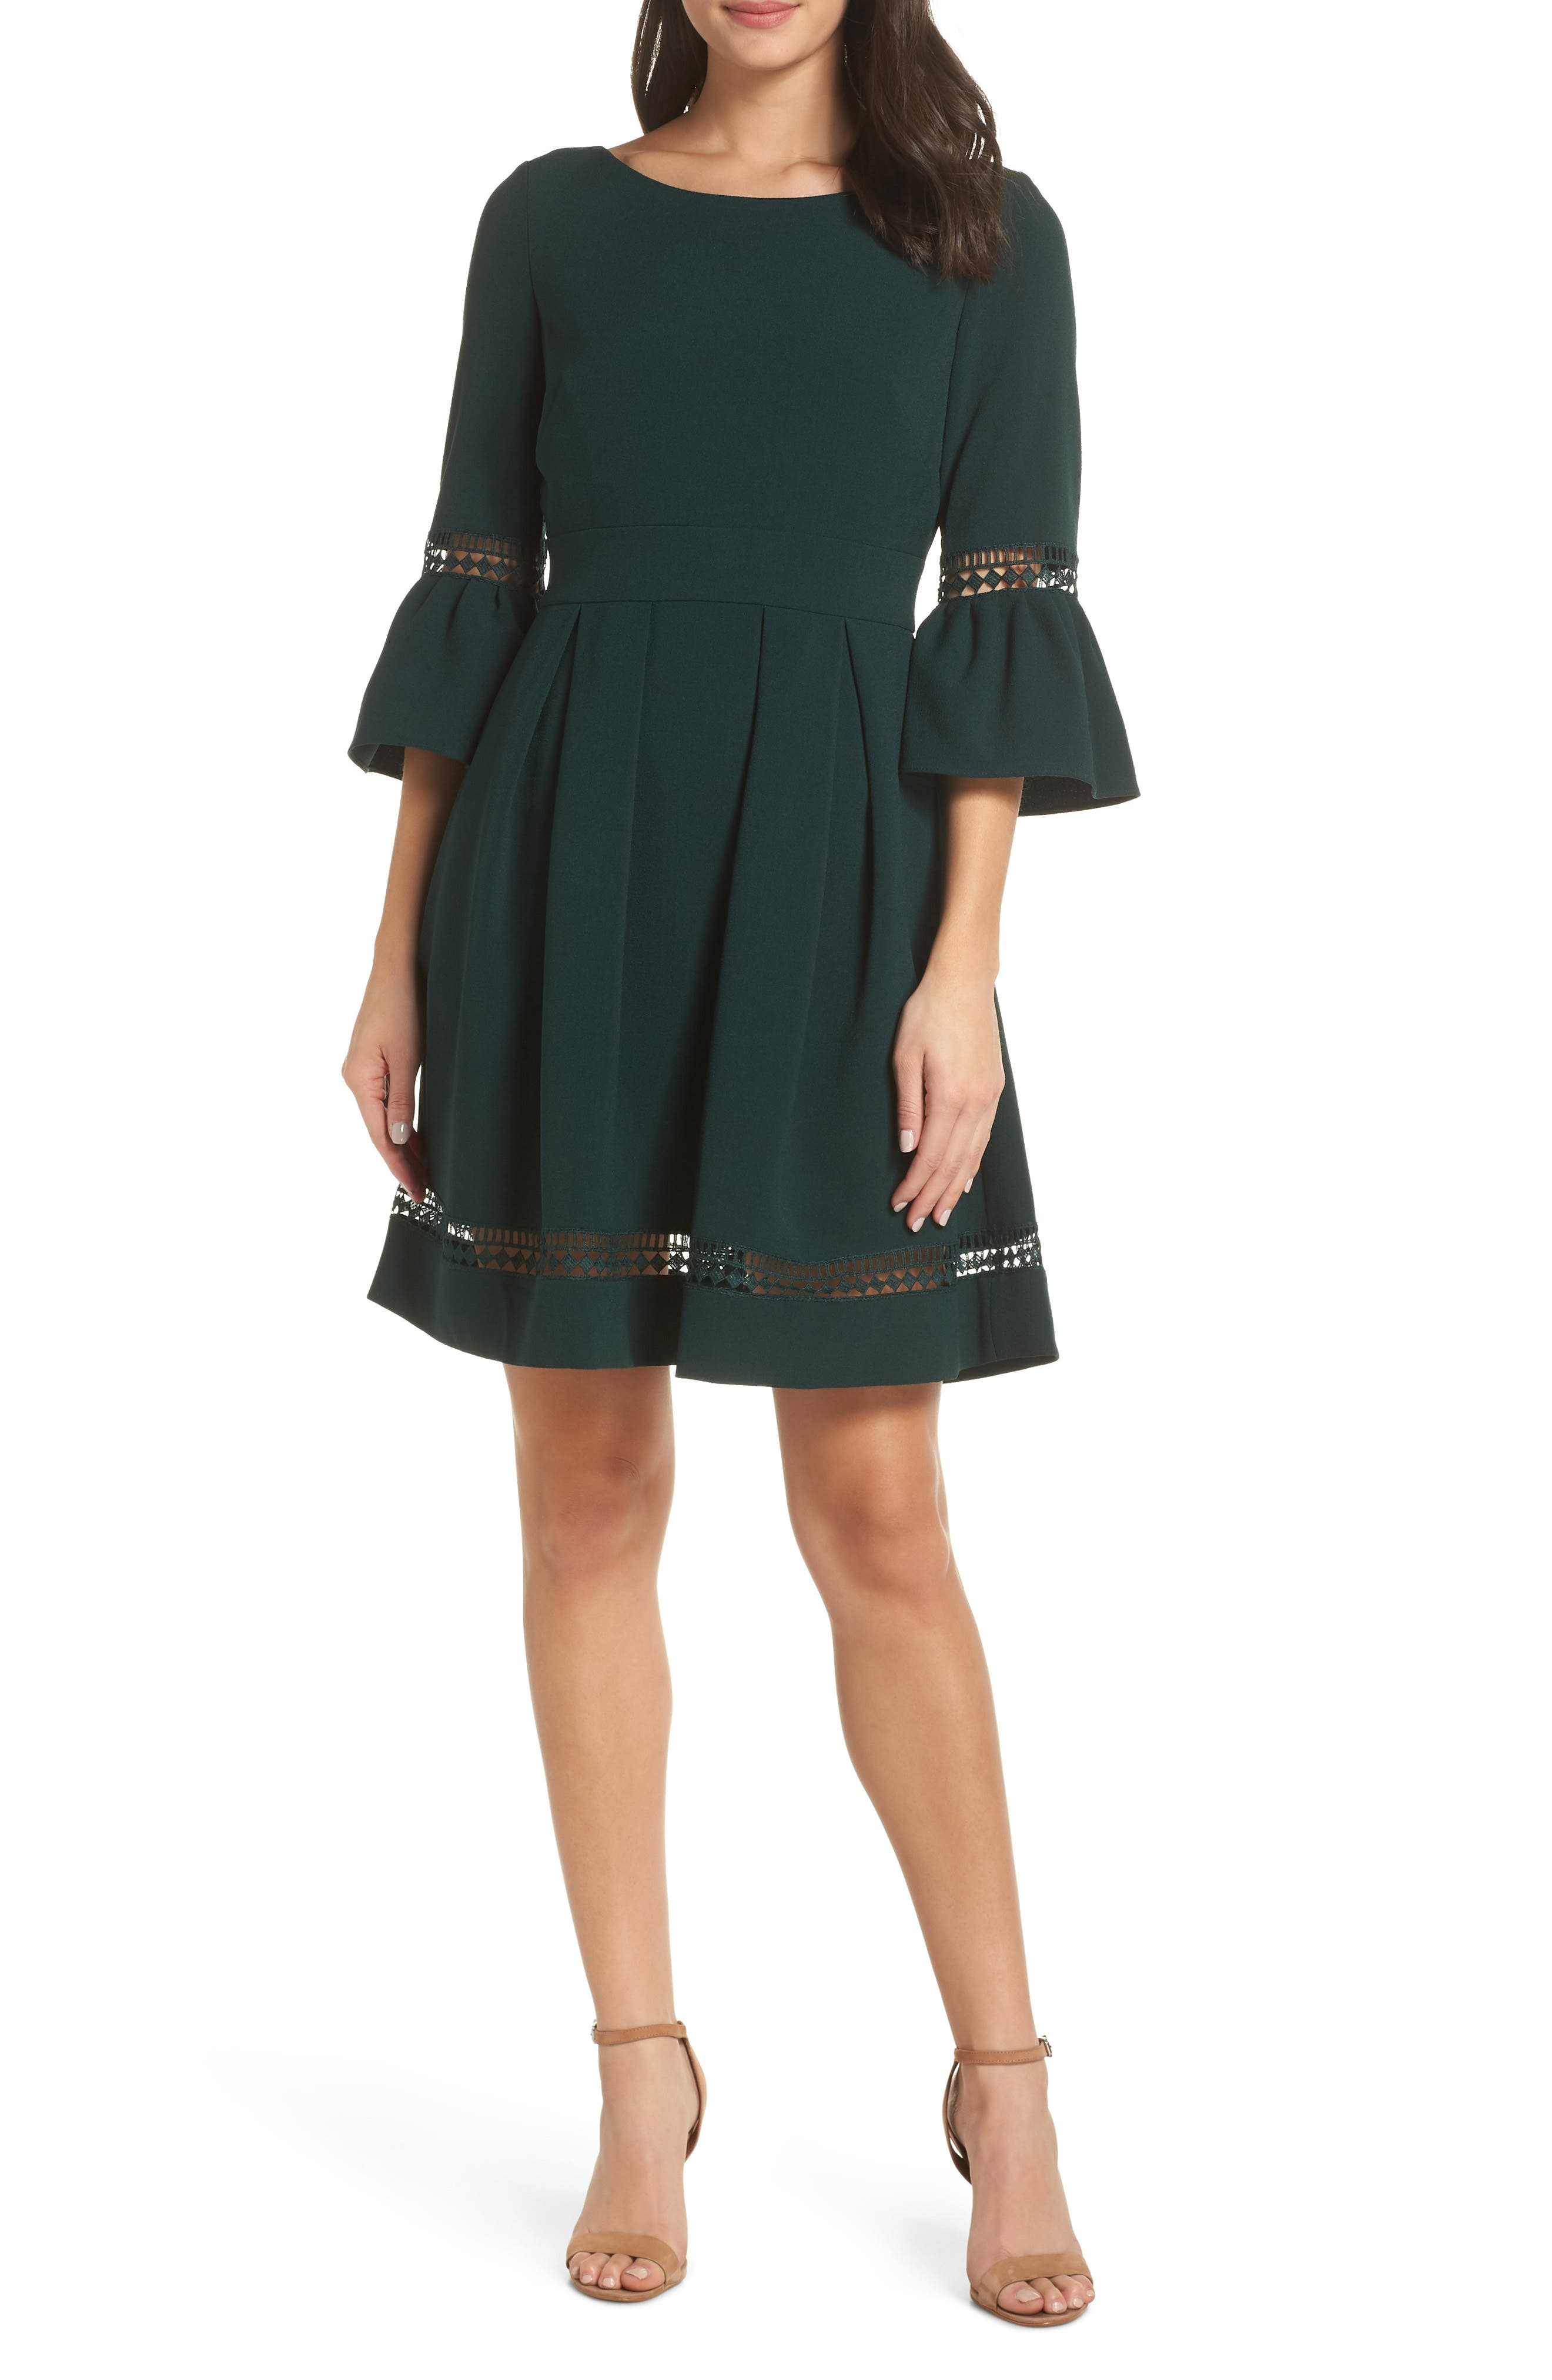 ELIZA J, Bell Sleeve Fit & Flare Dress, Main thumbnail 1, color, PINE